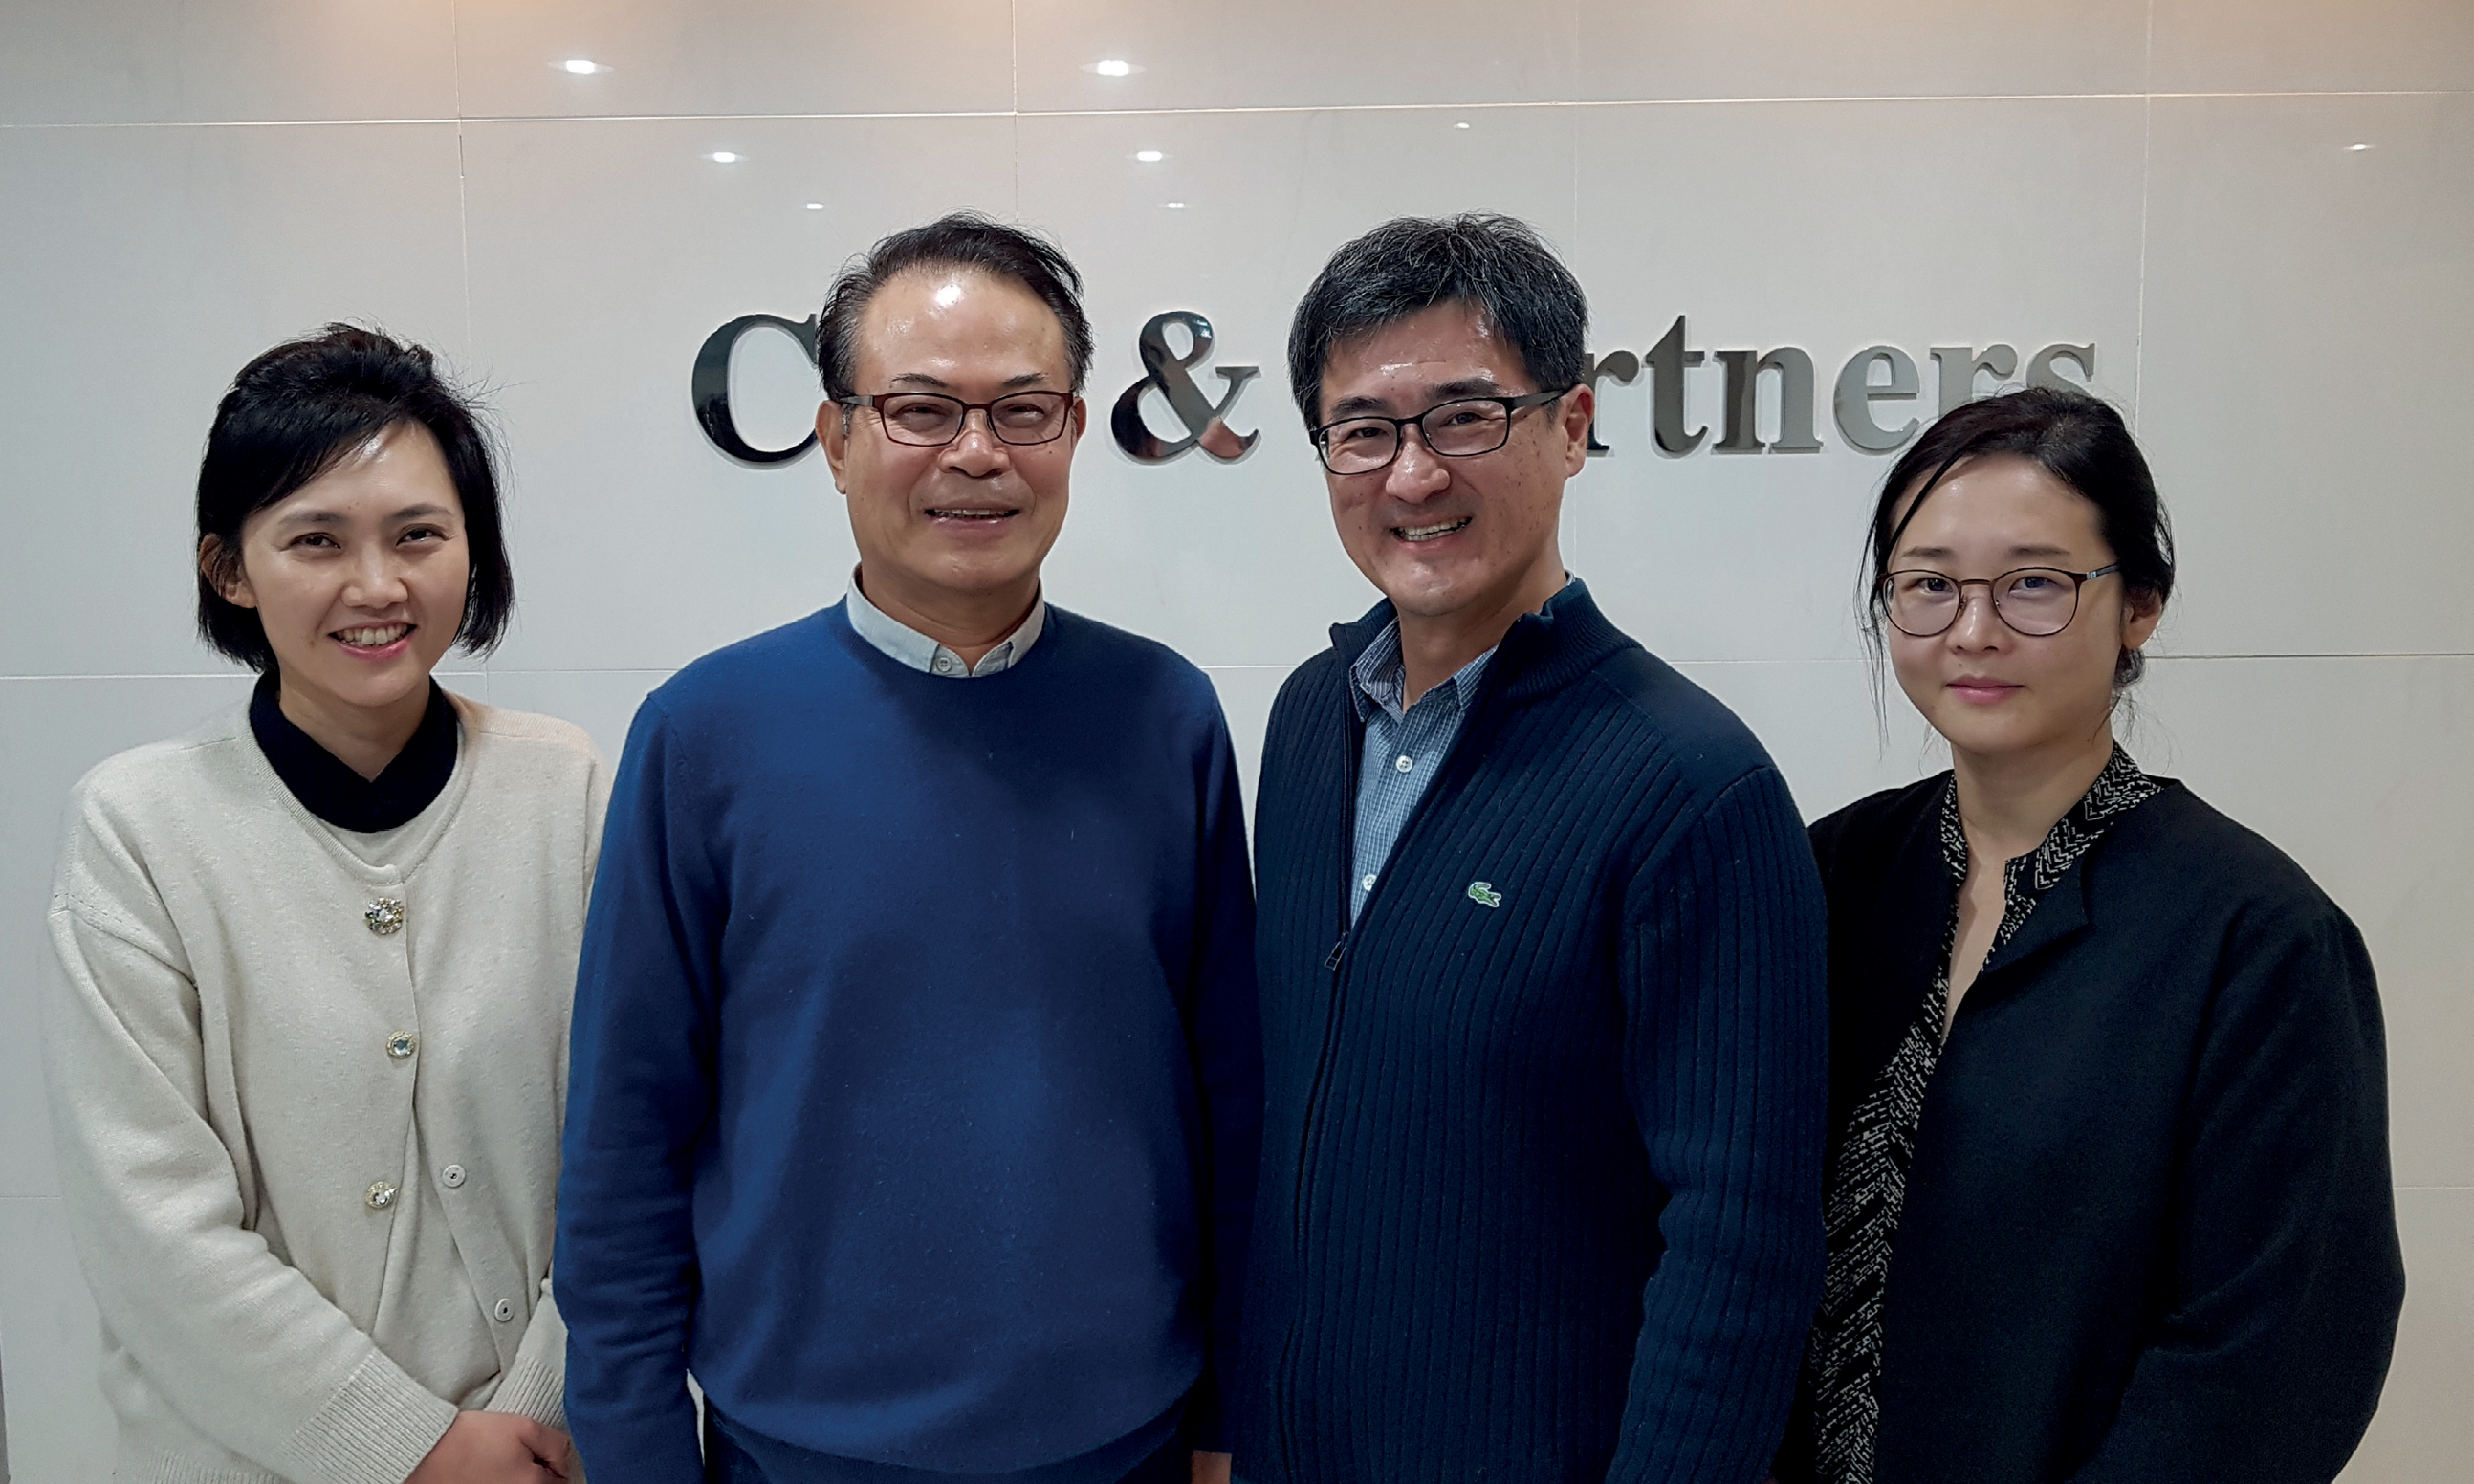 The Cho & Partners team